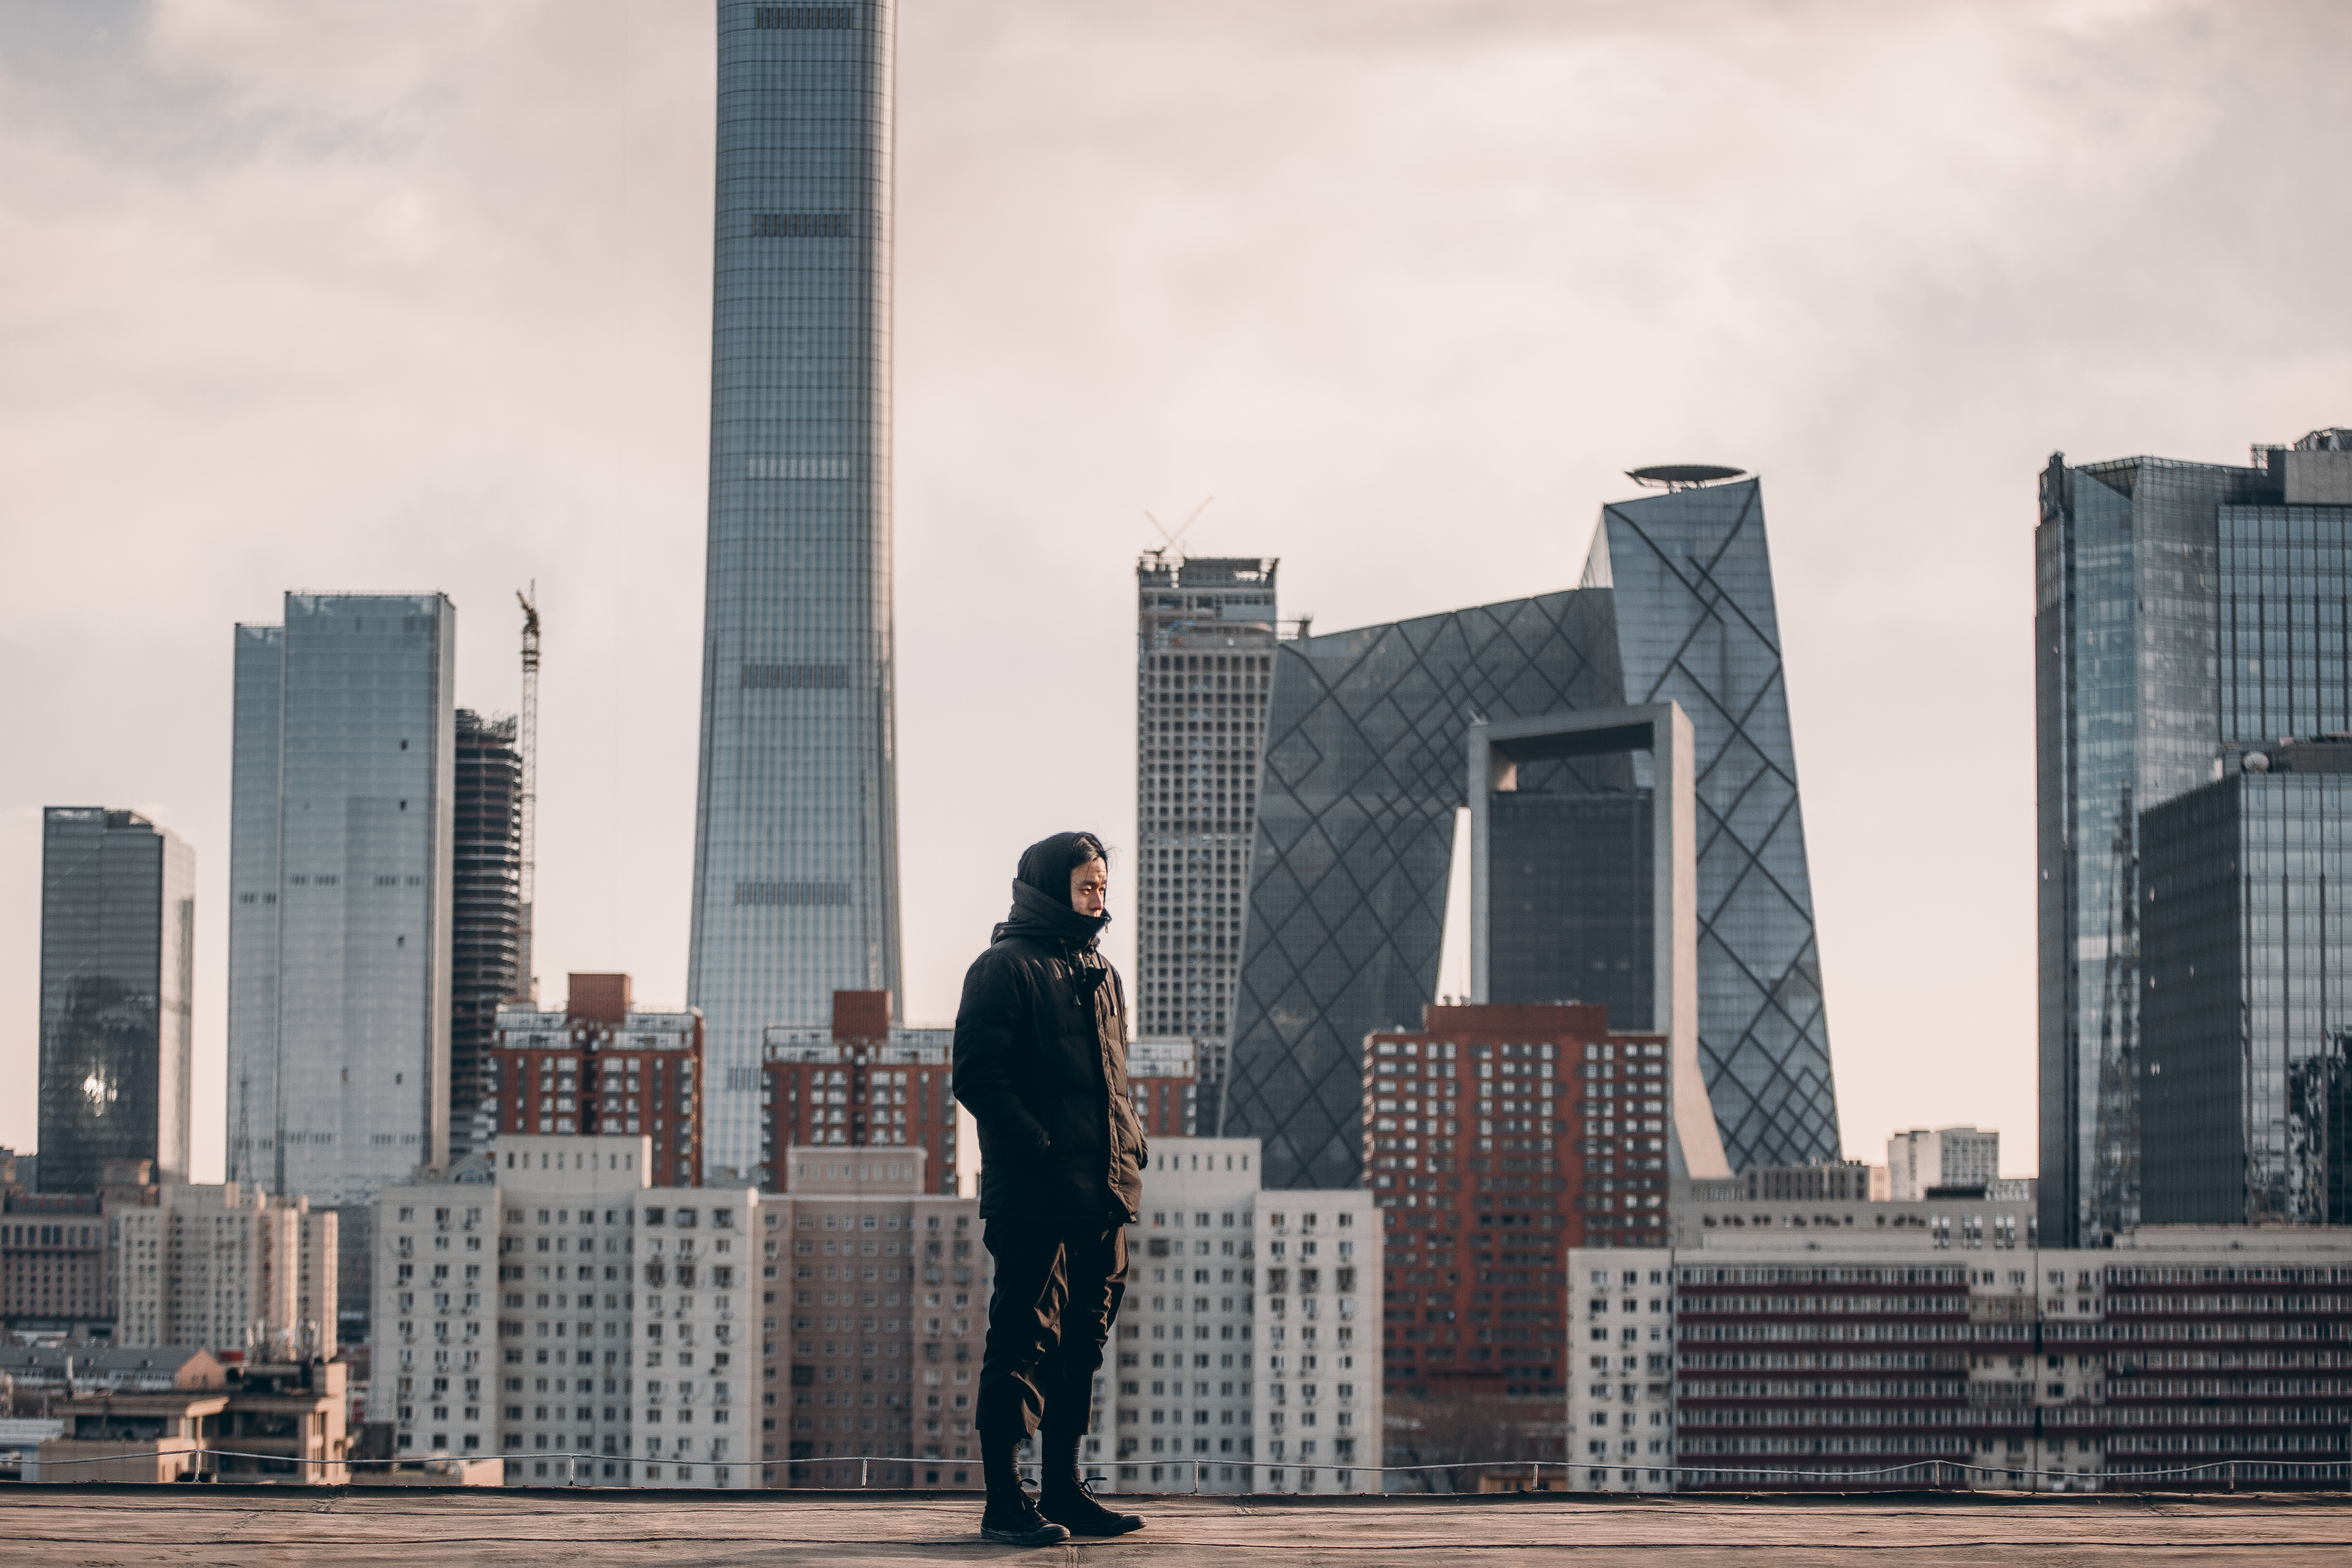 Image of a man standing in front of the Beijing skyline